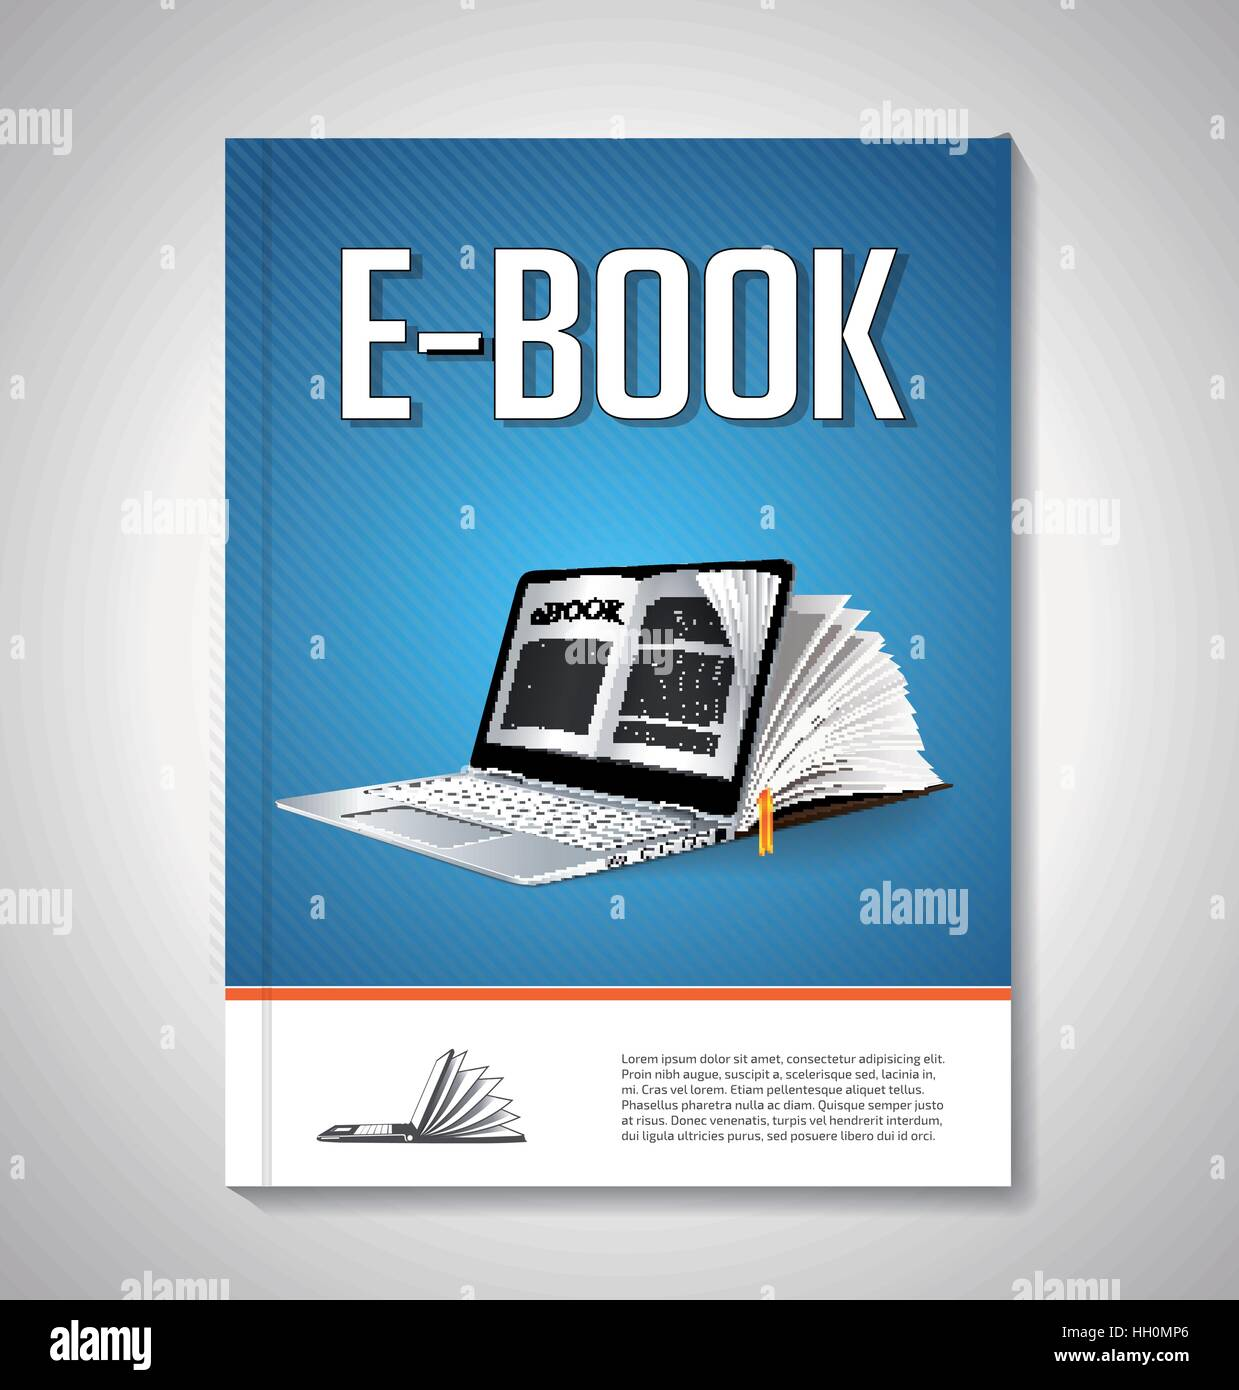 E-book cover design concept - Stock Image